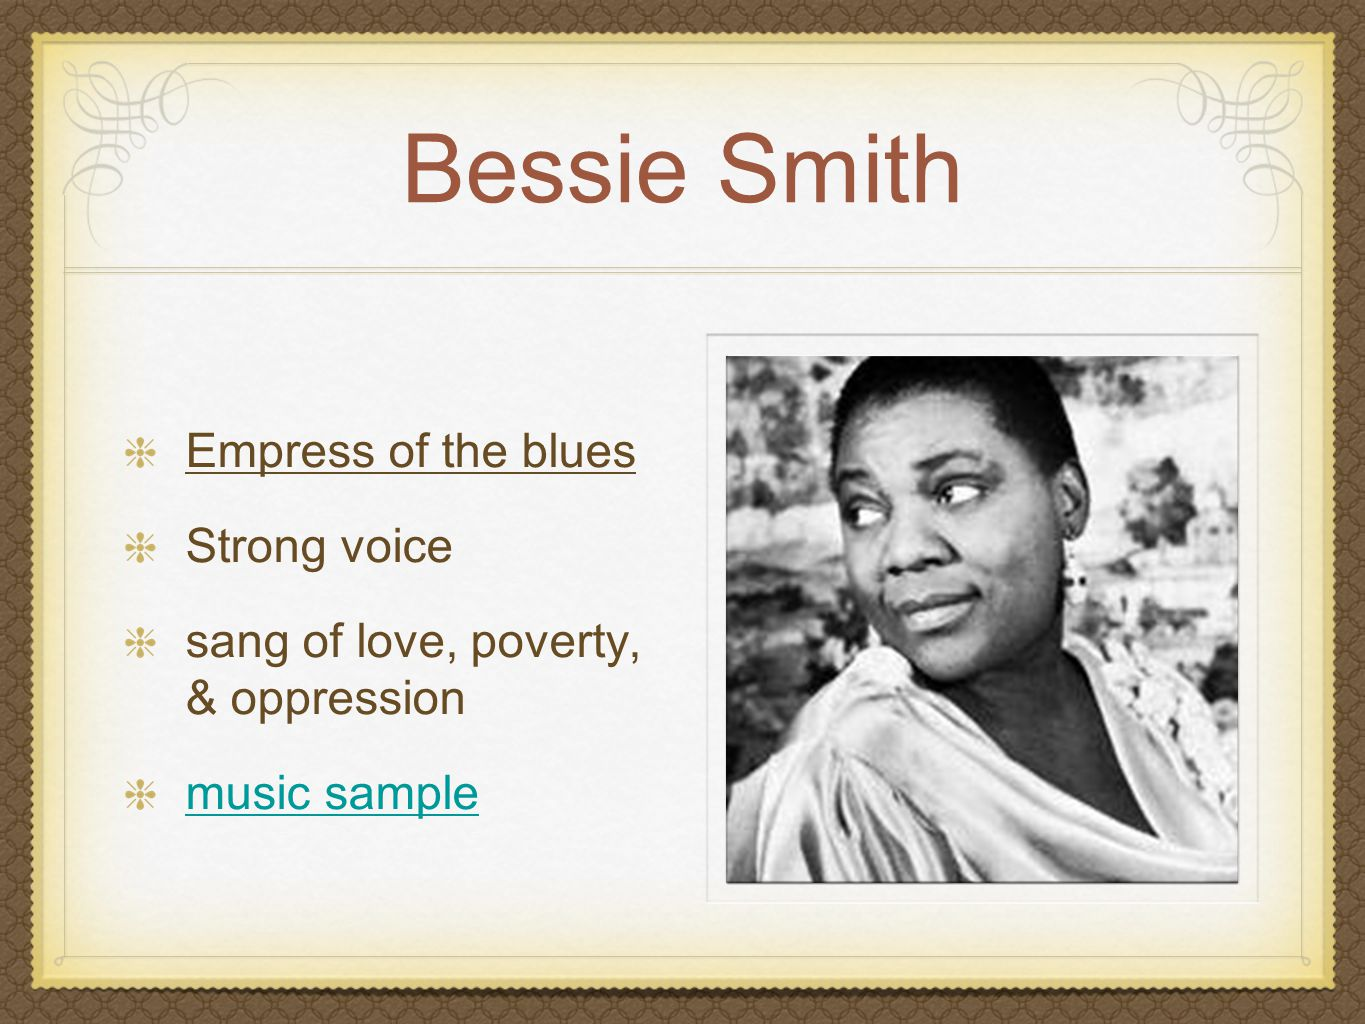 Bessie Smith Empress of the blues Strong voice